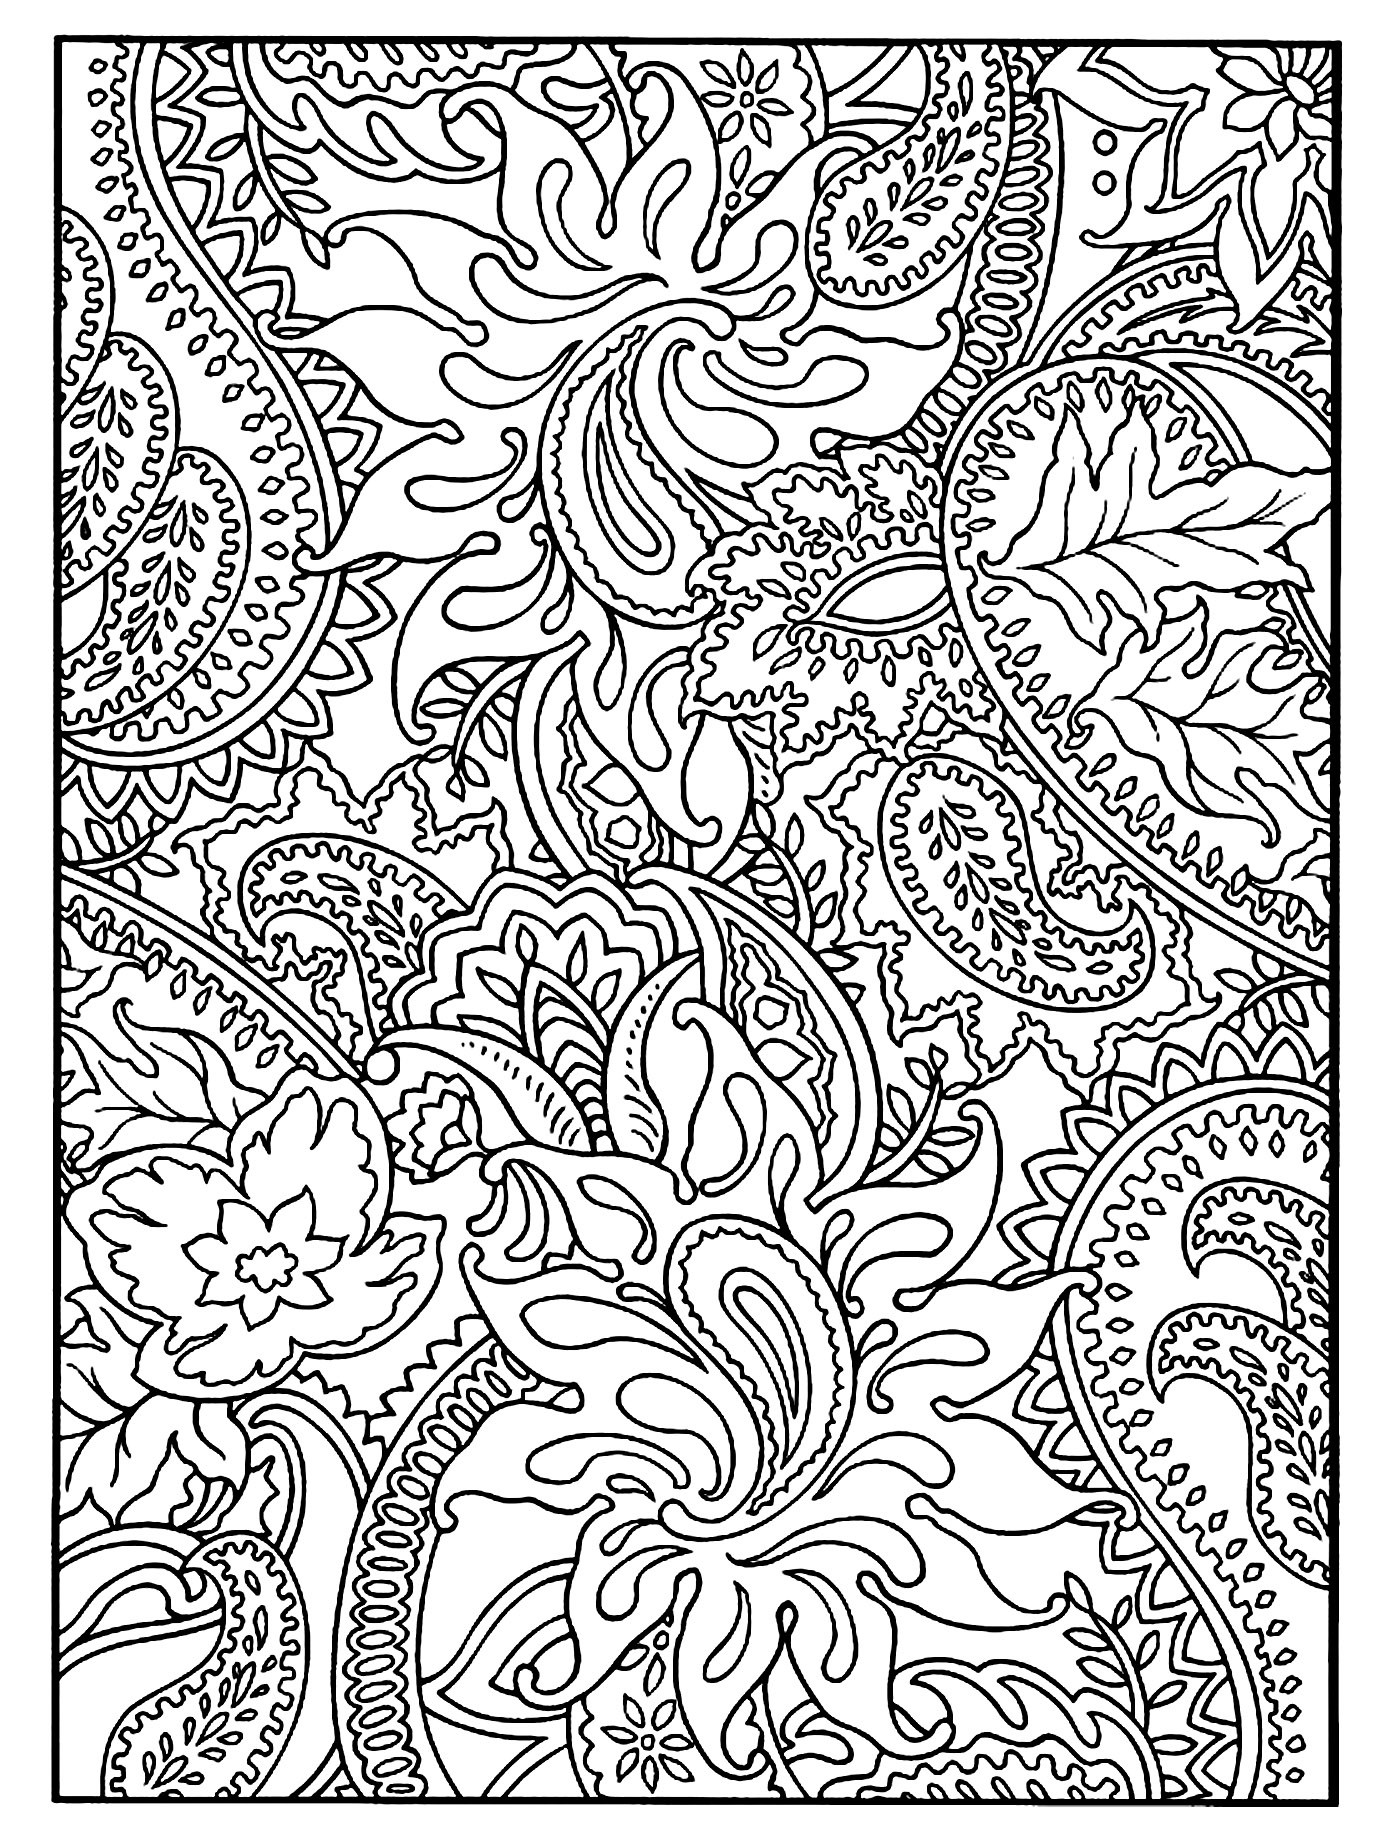 Flowers And Vegetation Full Page Flowers Vegetation Coloring